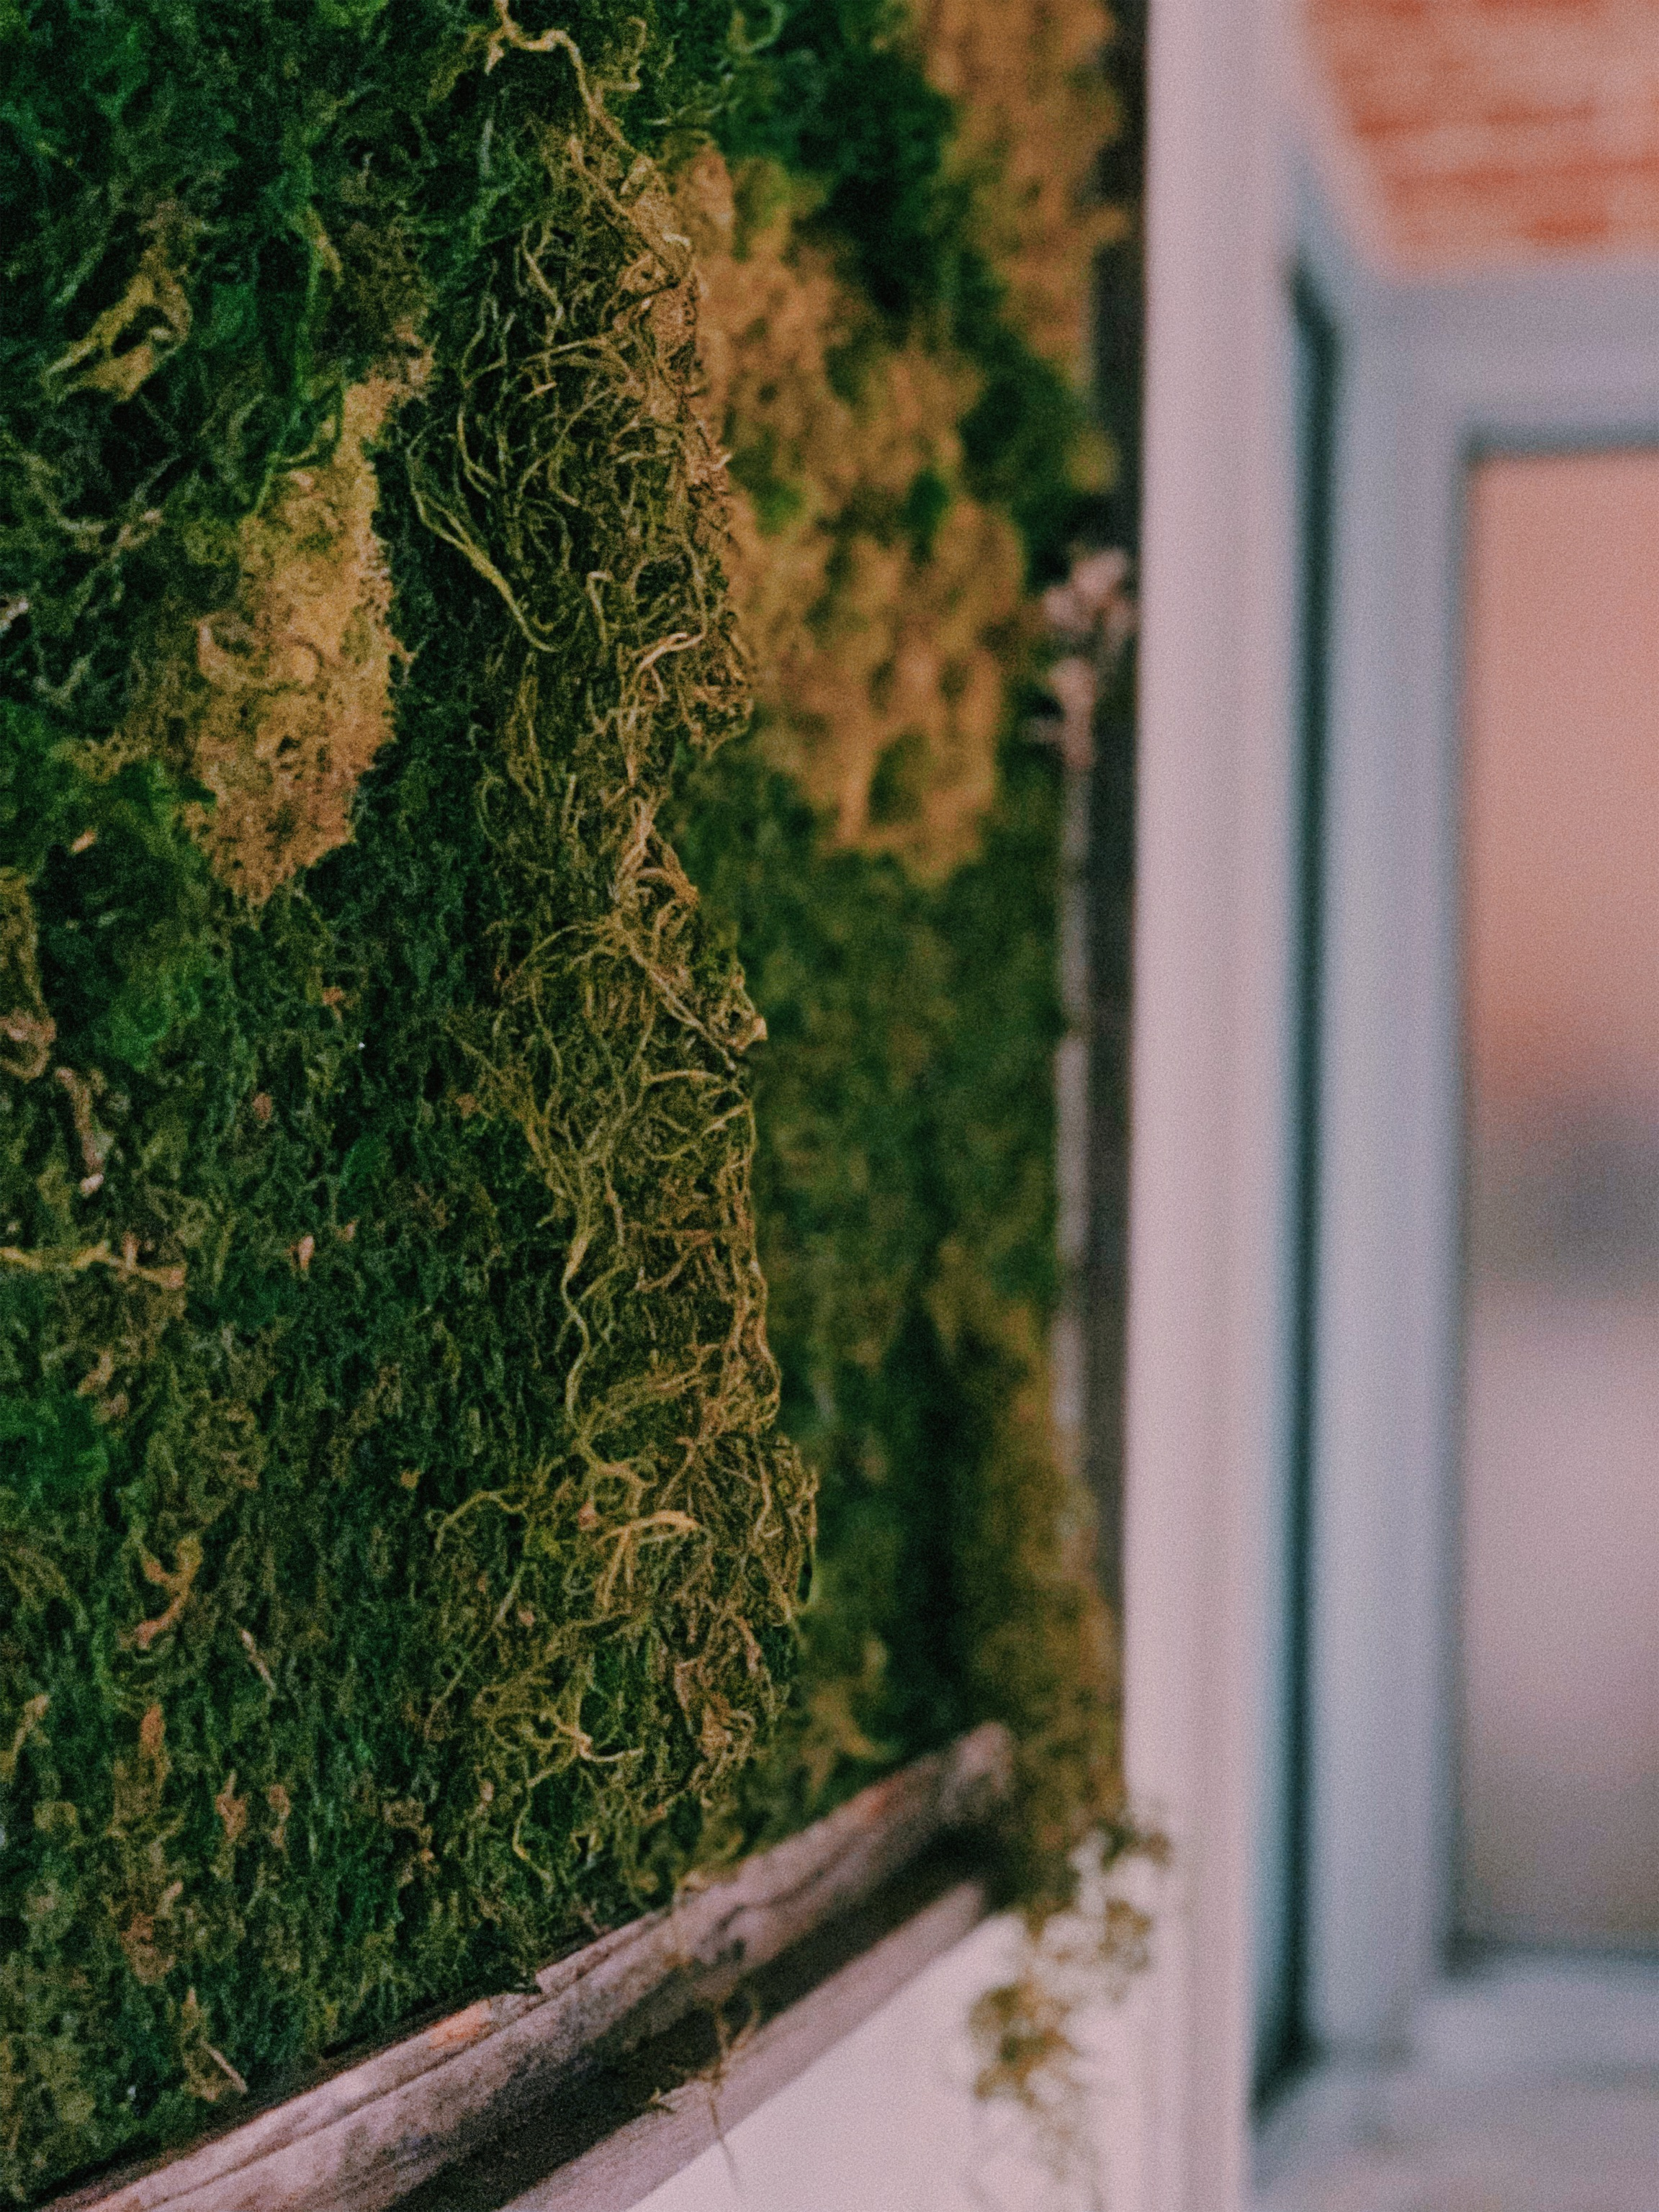 This is our moss wall art. We made it using preserved moss and a driftwood frame from Hobby Lobby.